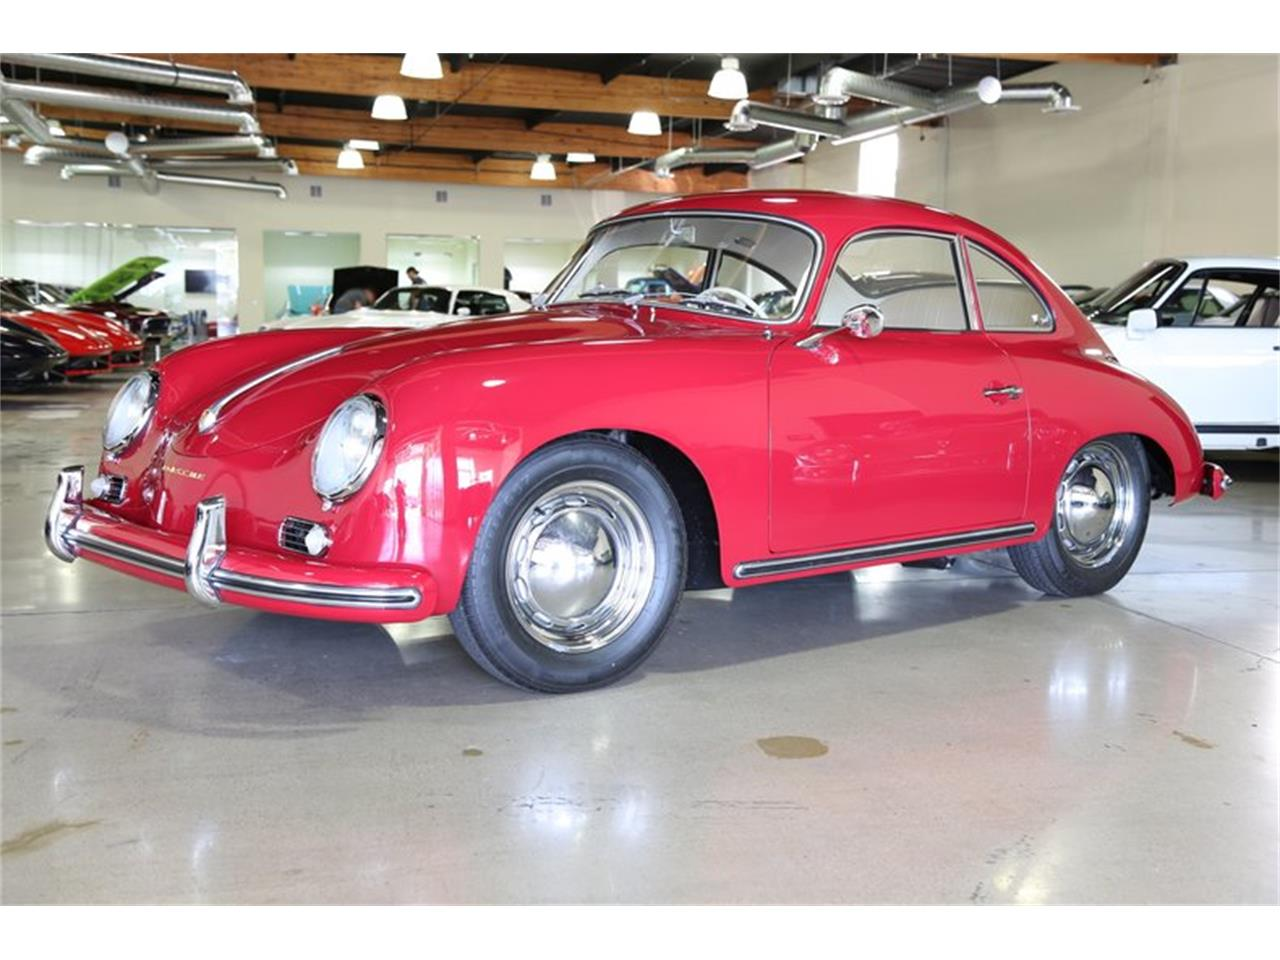 Large Picture of Classic '59 Porsche 356 located in California - $125,950.00 - HKNZ